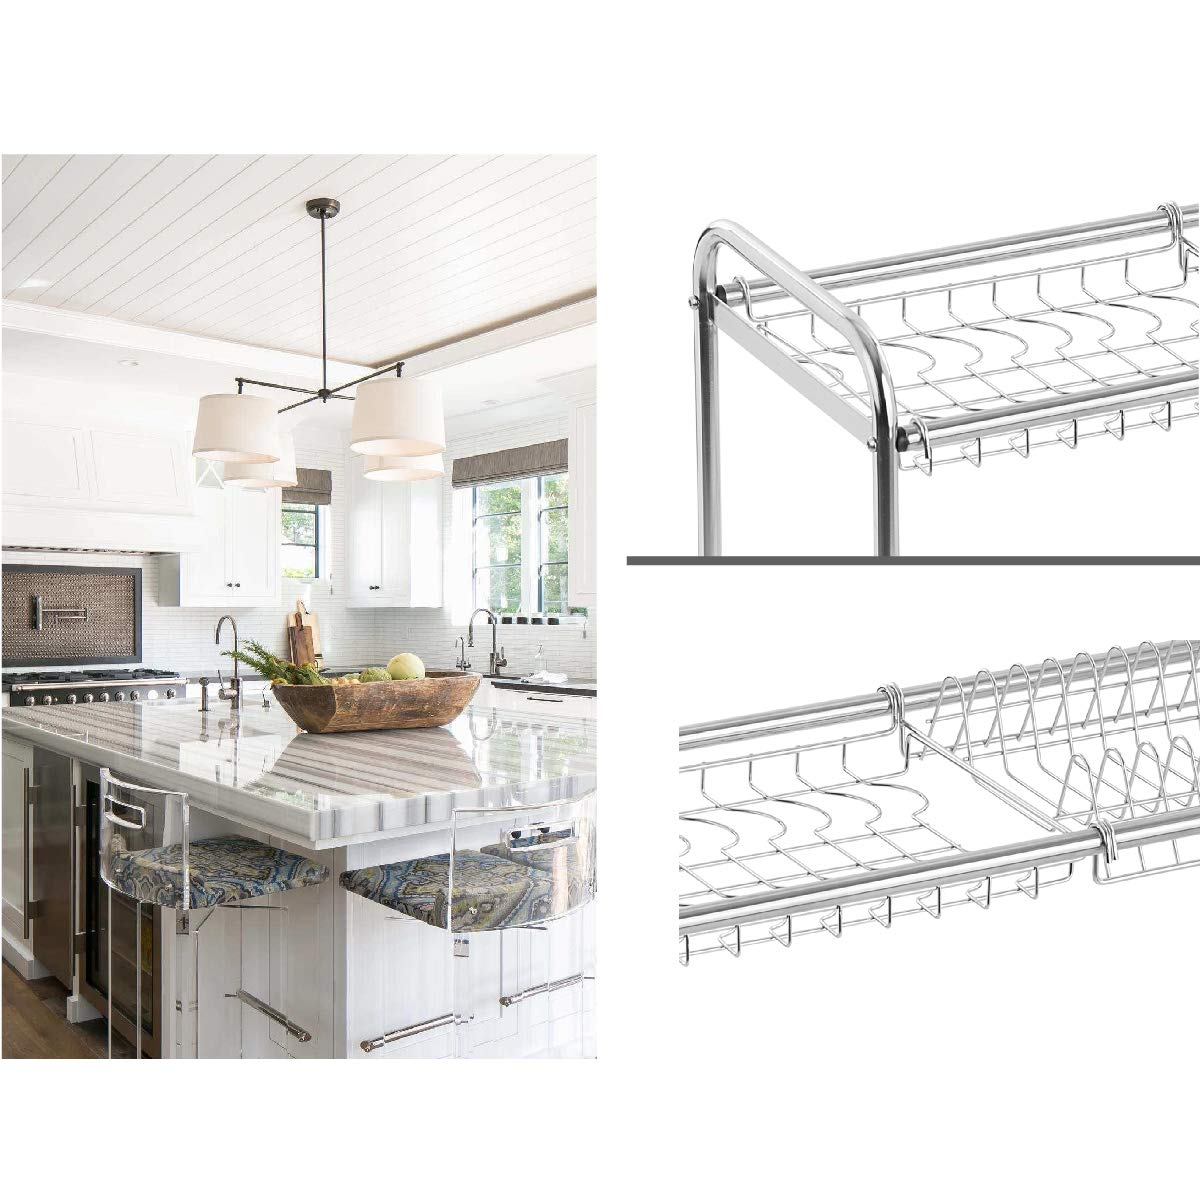 Dish Drainer B SMIO 2-Tier Stainless Steel Dish Rack Dish Drainer with Chopstick Holder